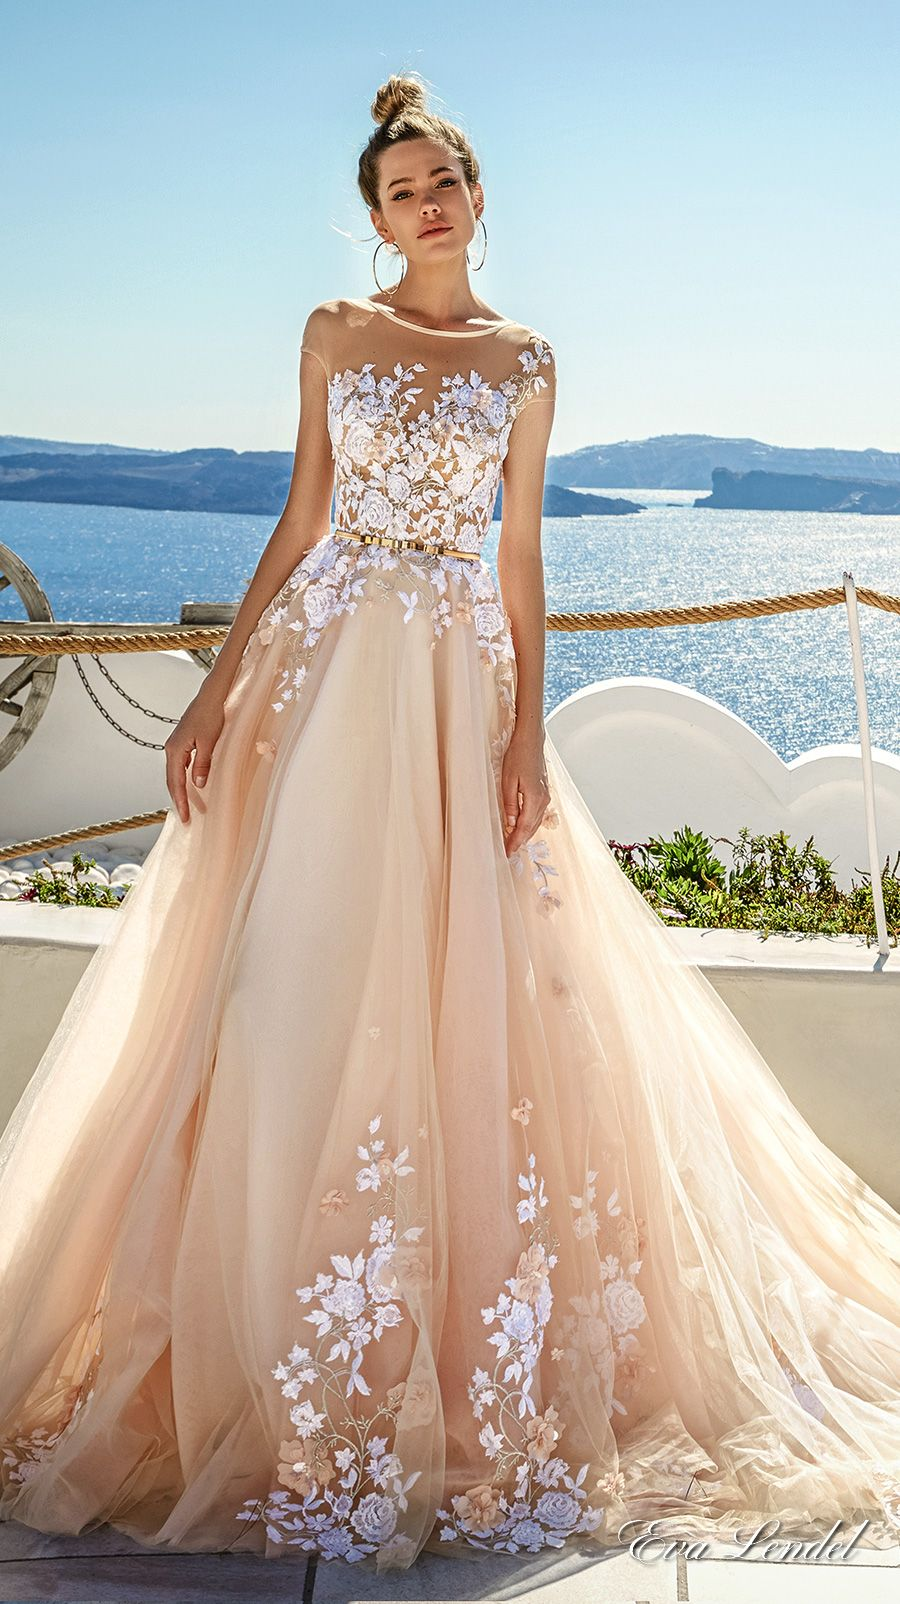 Eva lendel 2017 wedding dresses santorini bridal campaign eva lendel 2017 bridal sheer cap sleeves sheer jewel neck sweetheart neckline heavily embellished bodice blush color romantic a line wedding dress open v junglespirit